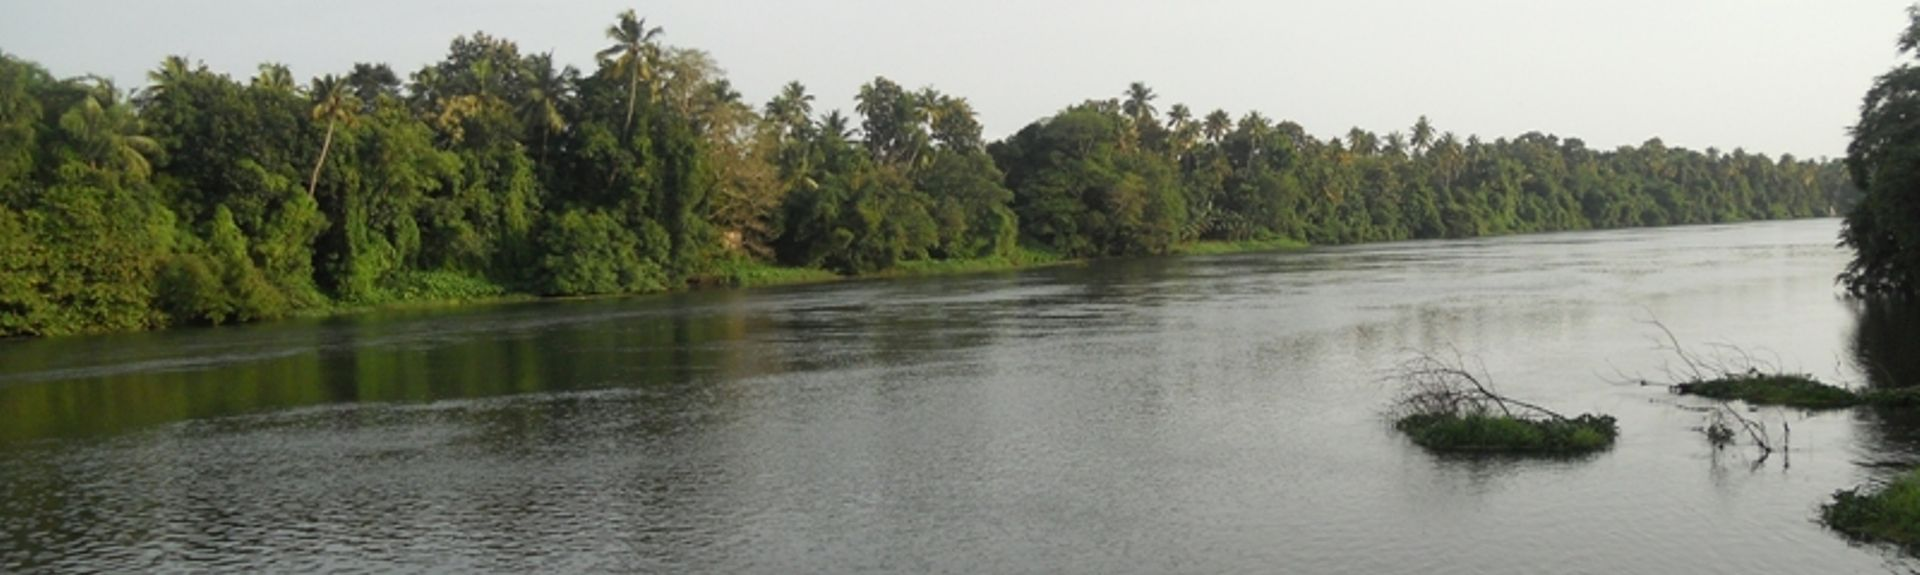 Alappuzha District, Kerala, India